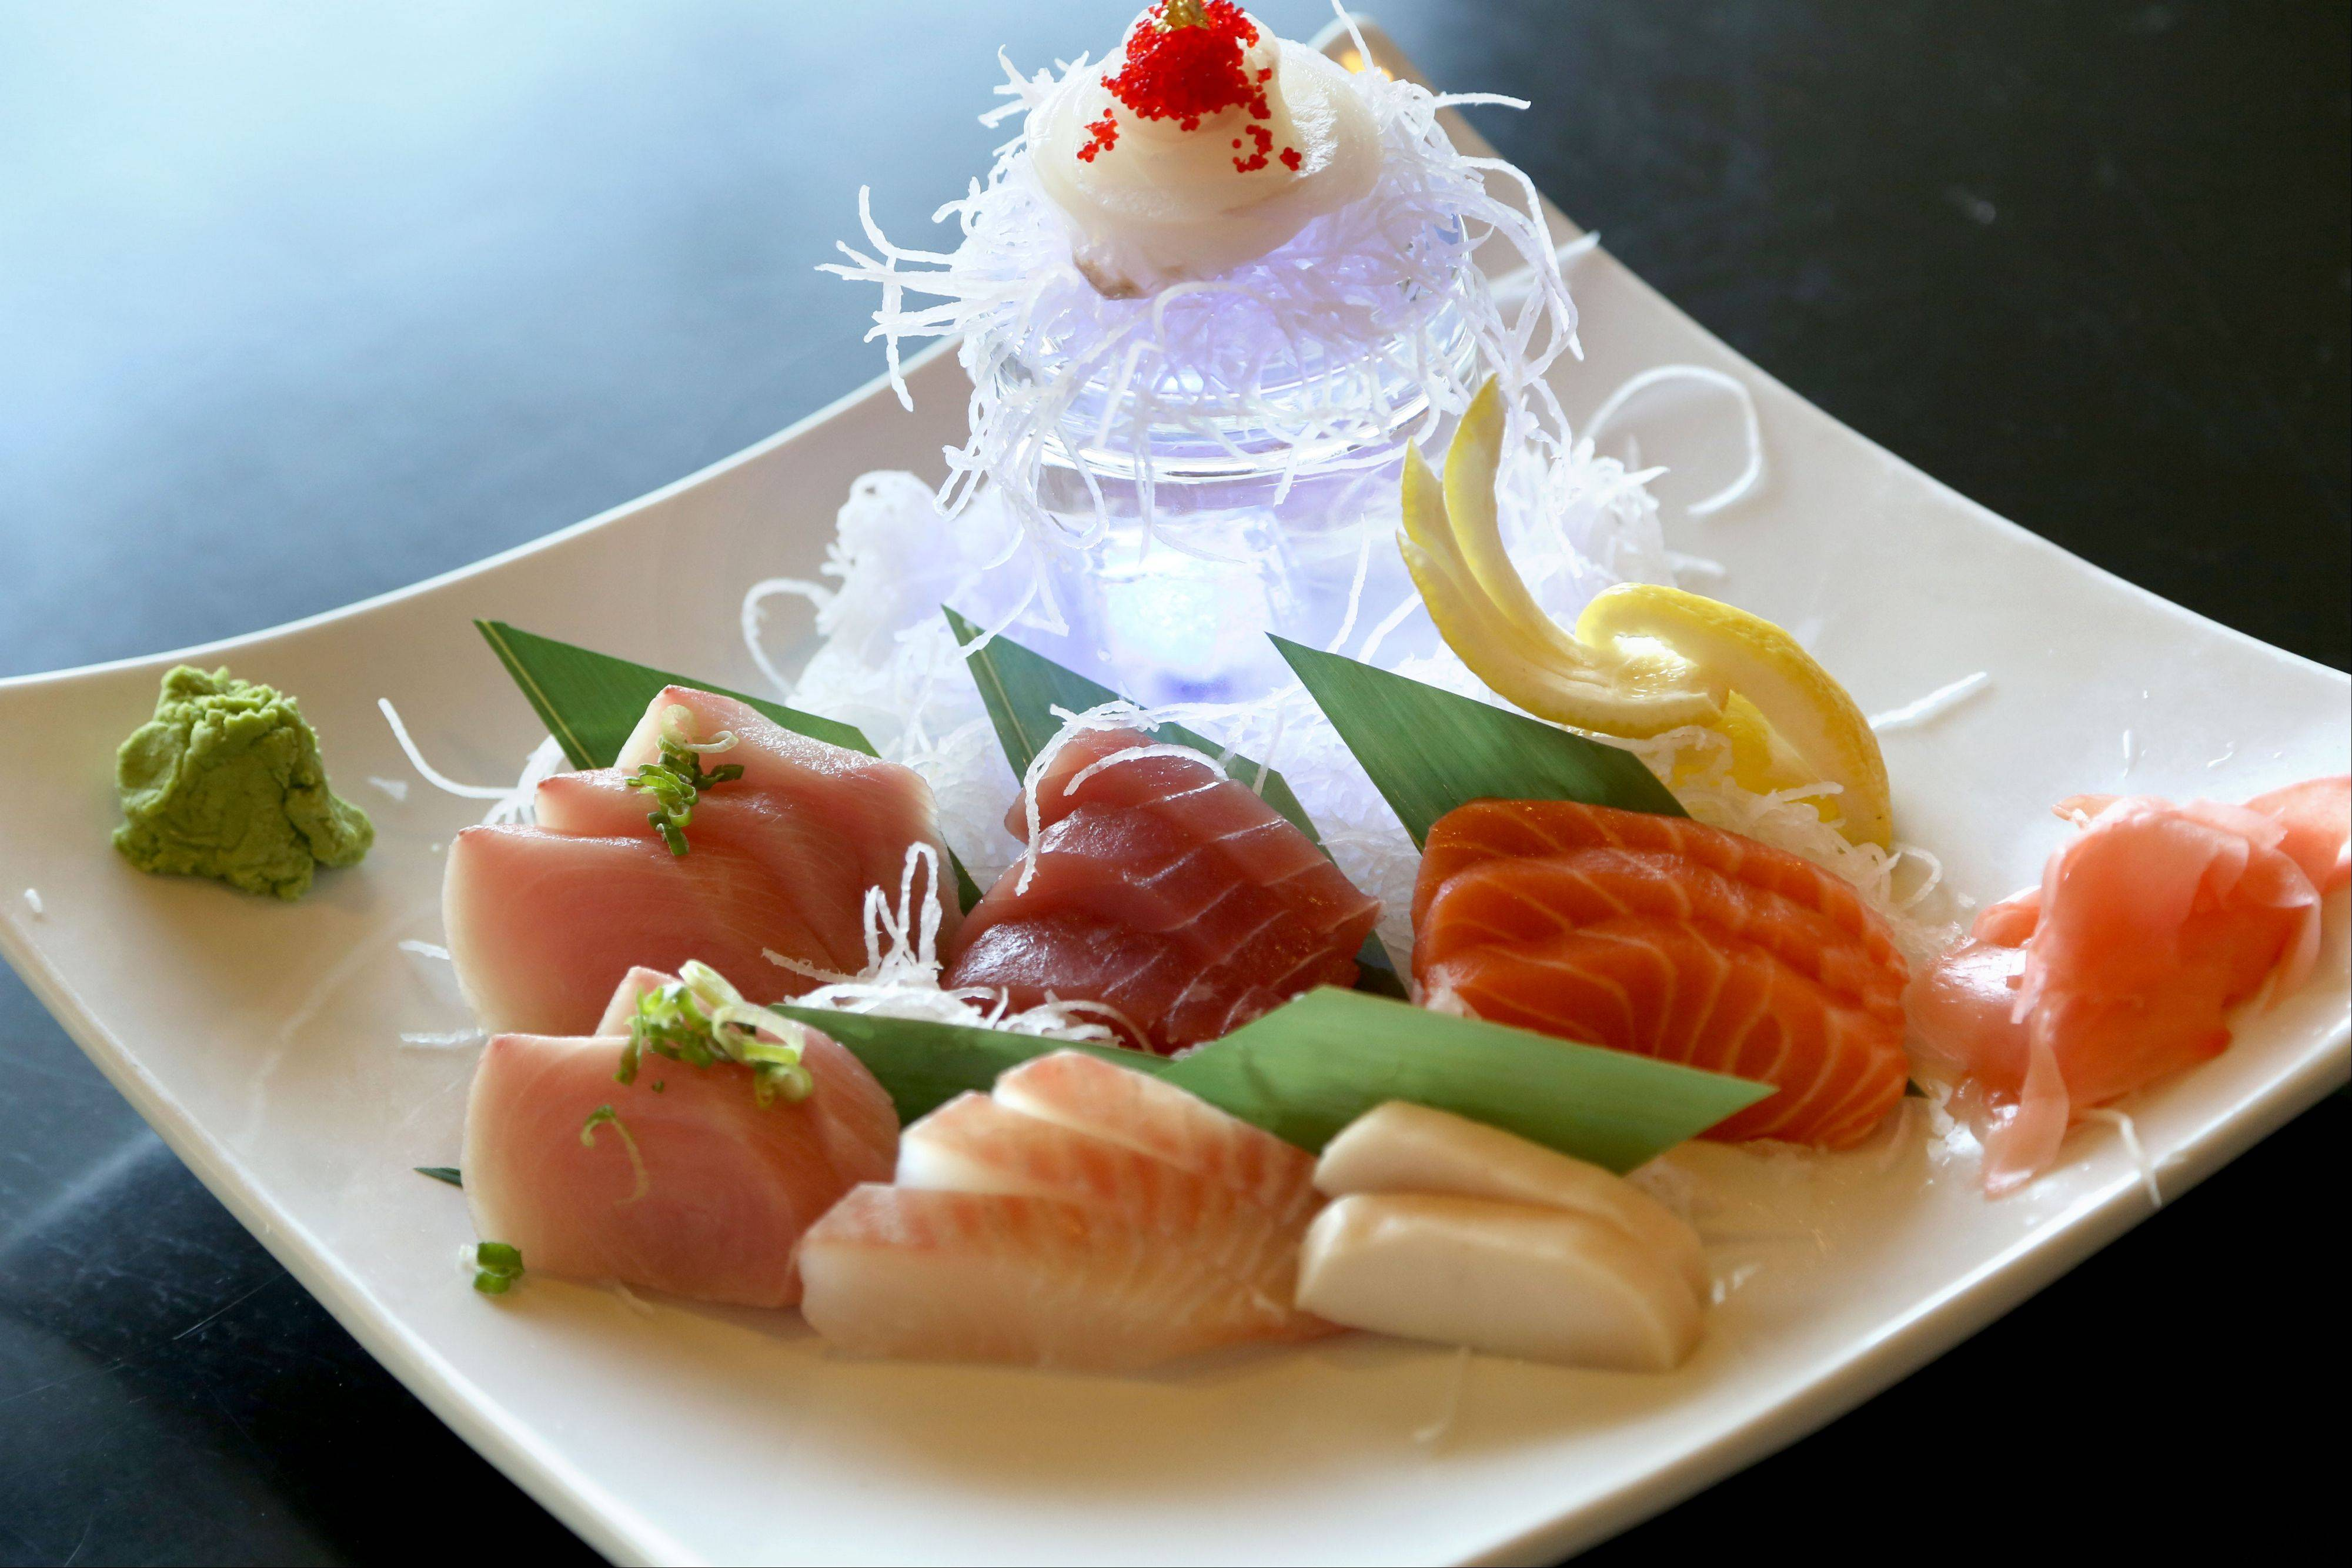 Sashimi delux is on the menu at Kawa Japanese Restaurant and Mongolian Grill in Grayslake.